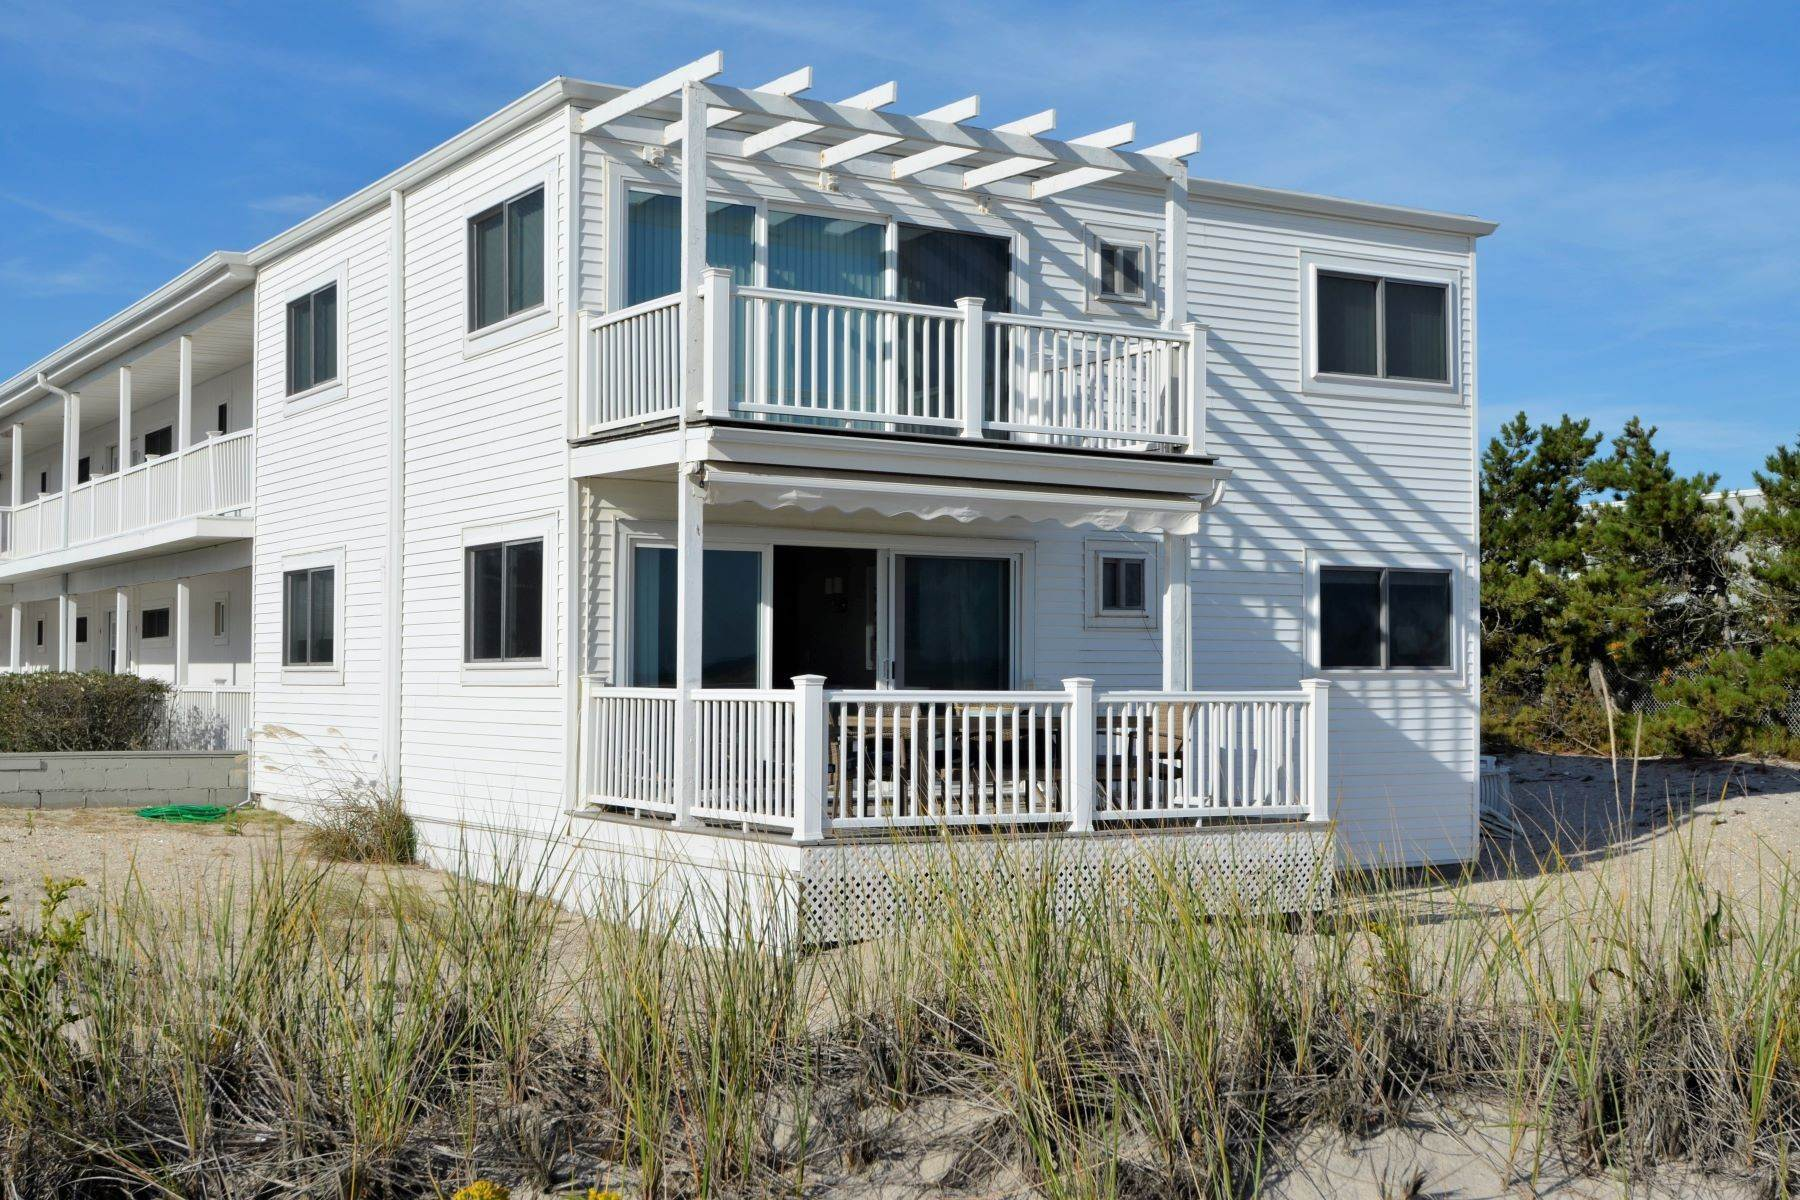 Co-op Properties for Sale at 281 Dune Road, Westhampton Bch, Ny, 11978 281 Dune Road, Unit# 1A Other Areas, New York 11978 United States